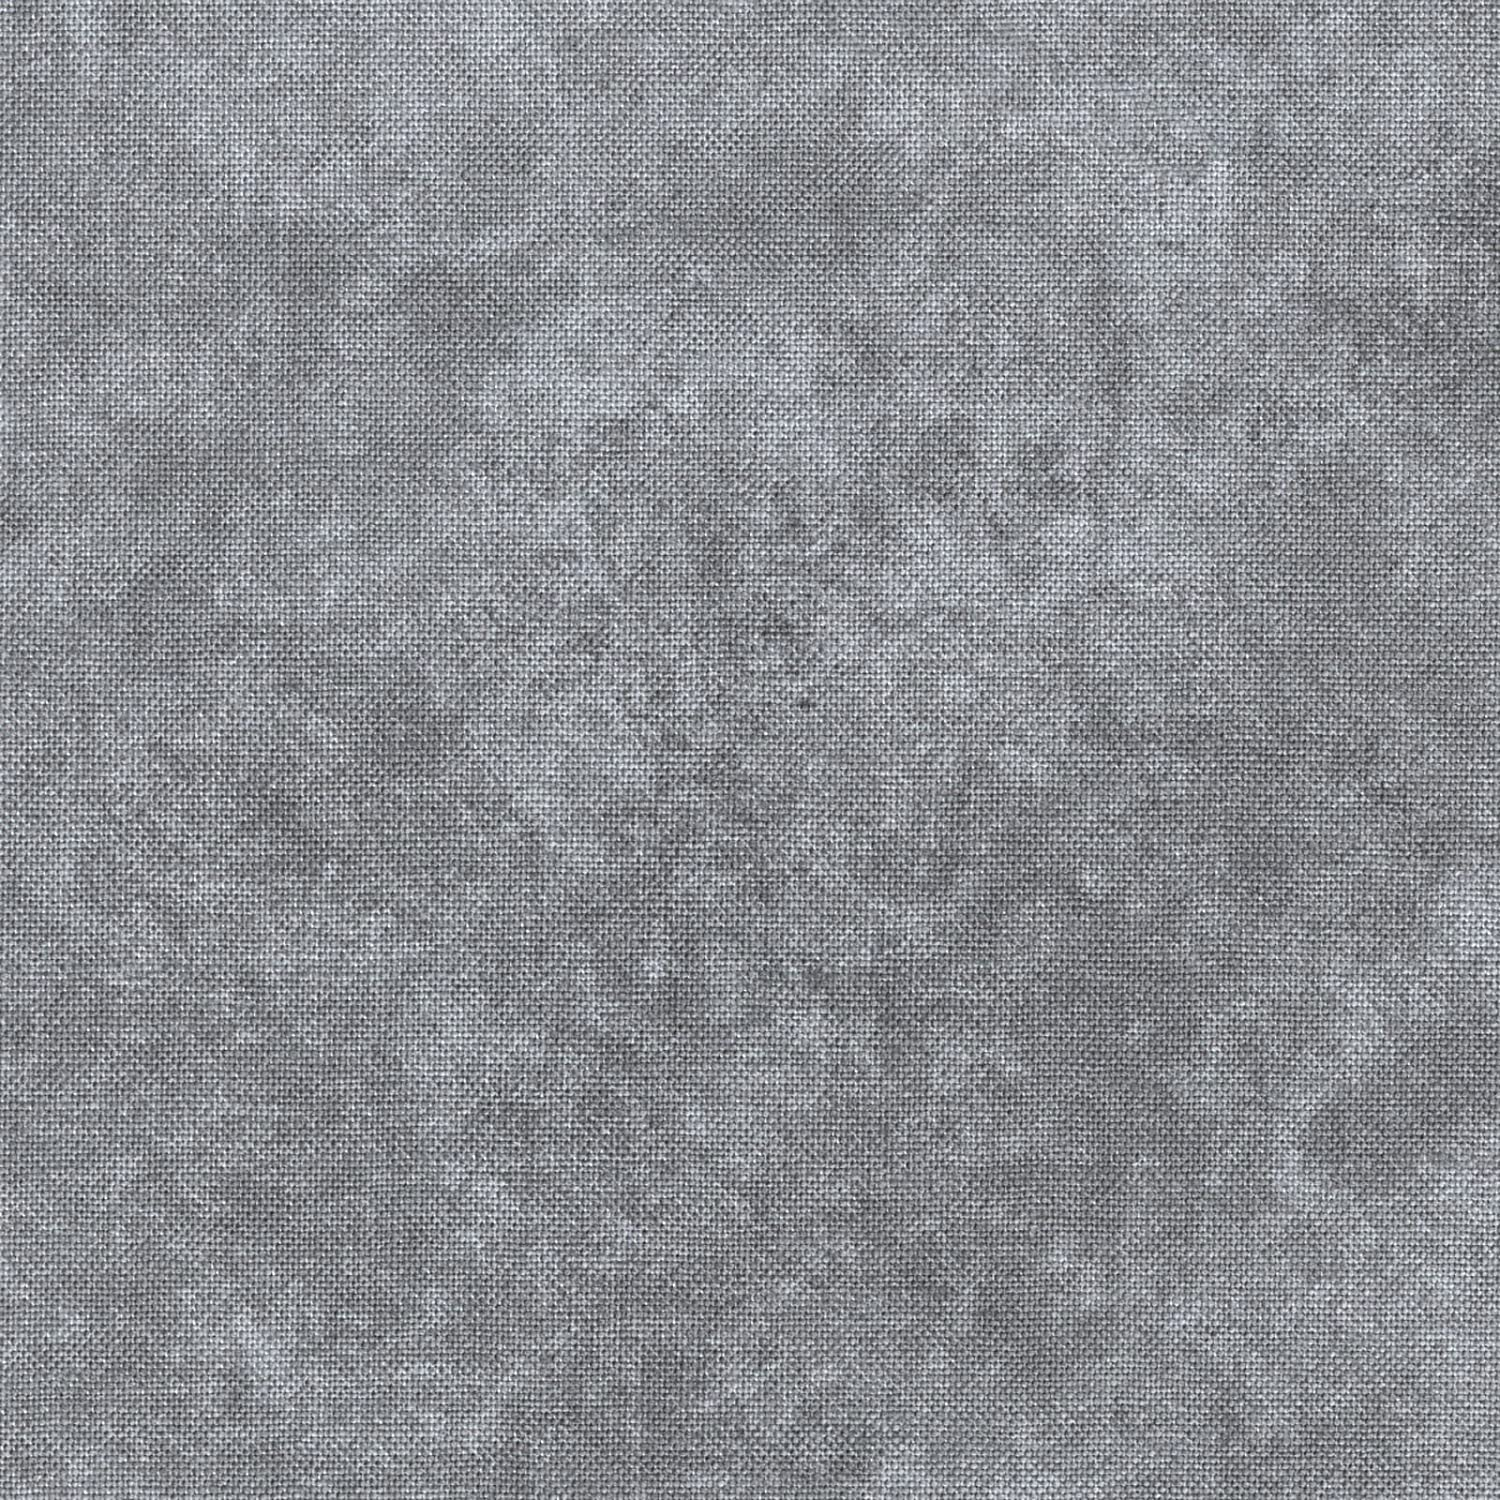 Versatile, Light to Medium Gray Tonal Fabric, Shadow Play, 513-JK, Maywood Studio